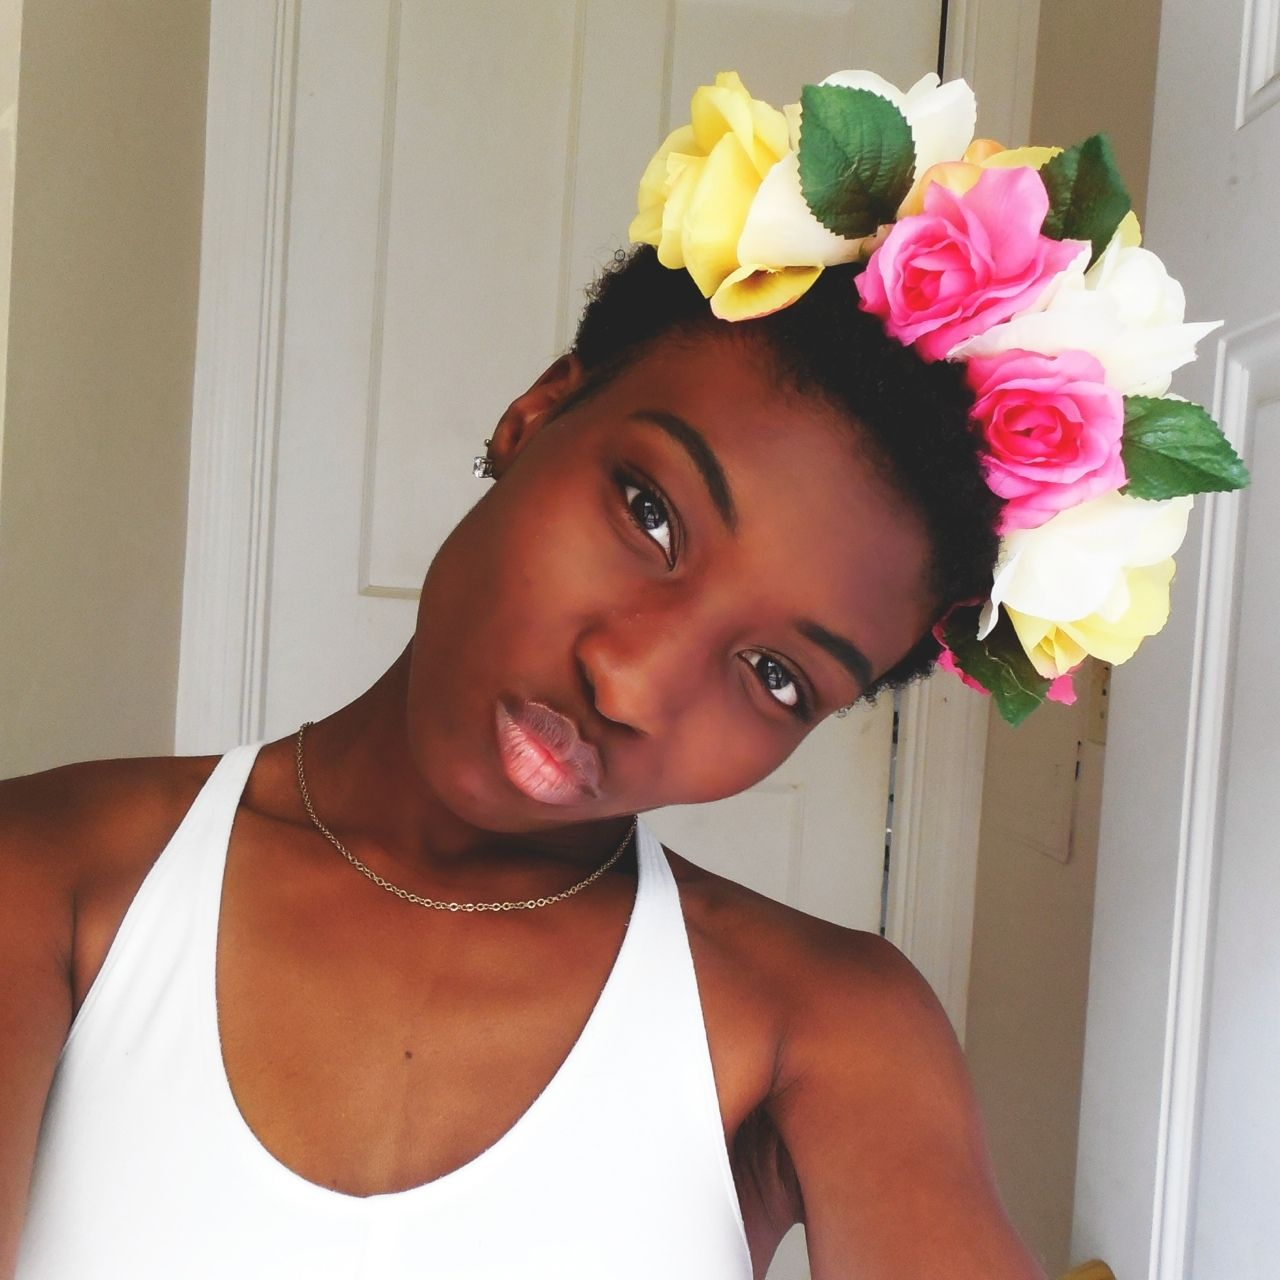 Woman black afro natural hair flower crown beautiful woman of color woman black afro natural hair flower crown beautiful woman of color izmirmasajfo Image collections